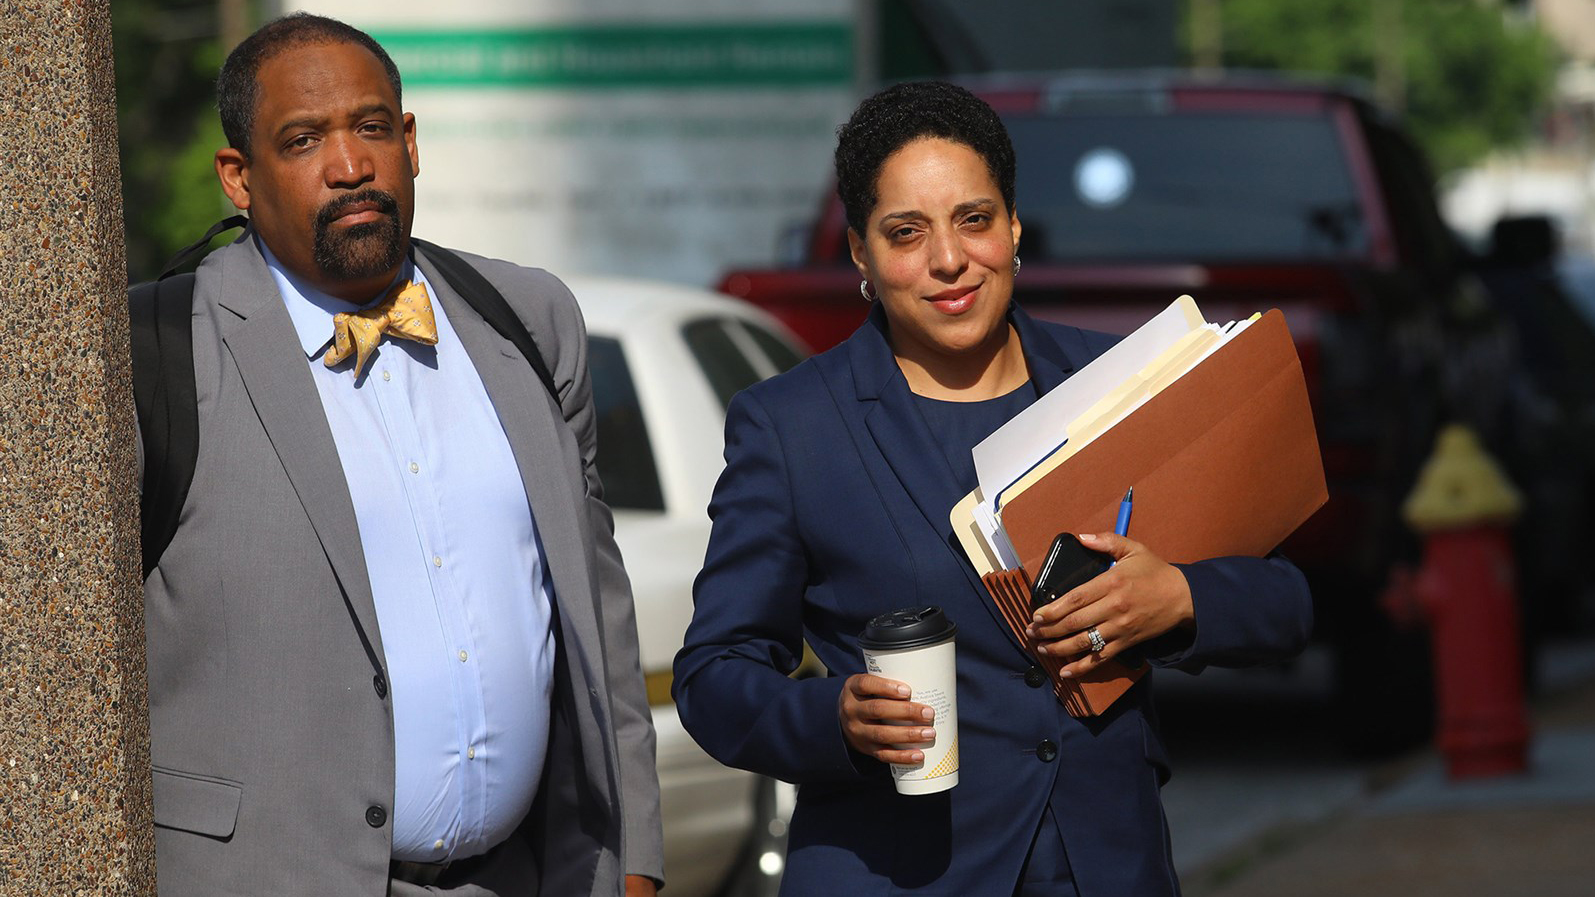 St. Louis Circuit Attorney Kim Gardner and Ronald Sullivan, a Harvard law professor, in 2018.Christian Gooden / St. Louis Post-Dispatch/TNS via Getty Images